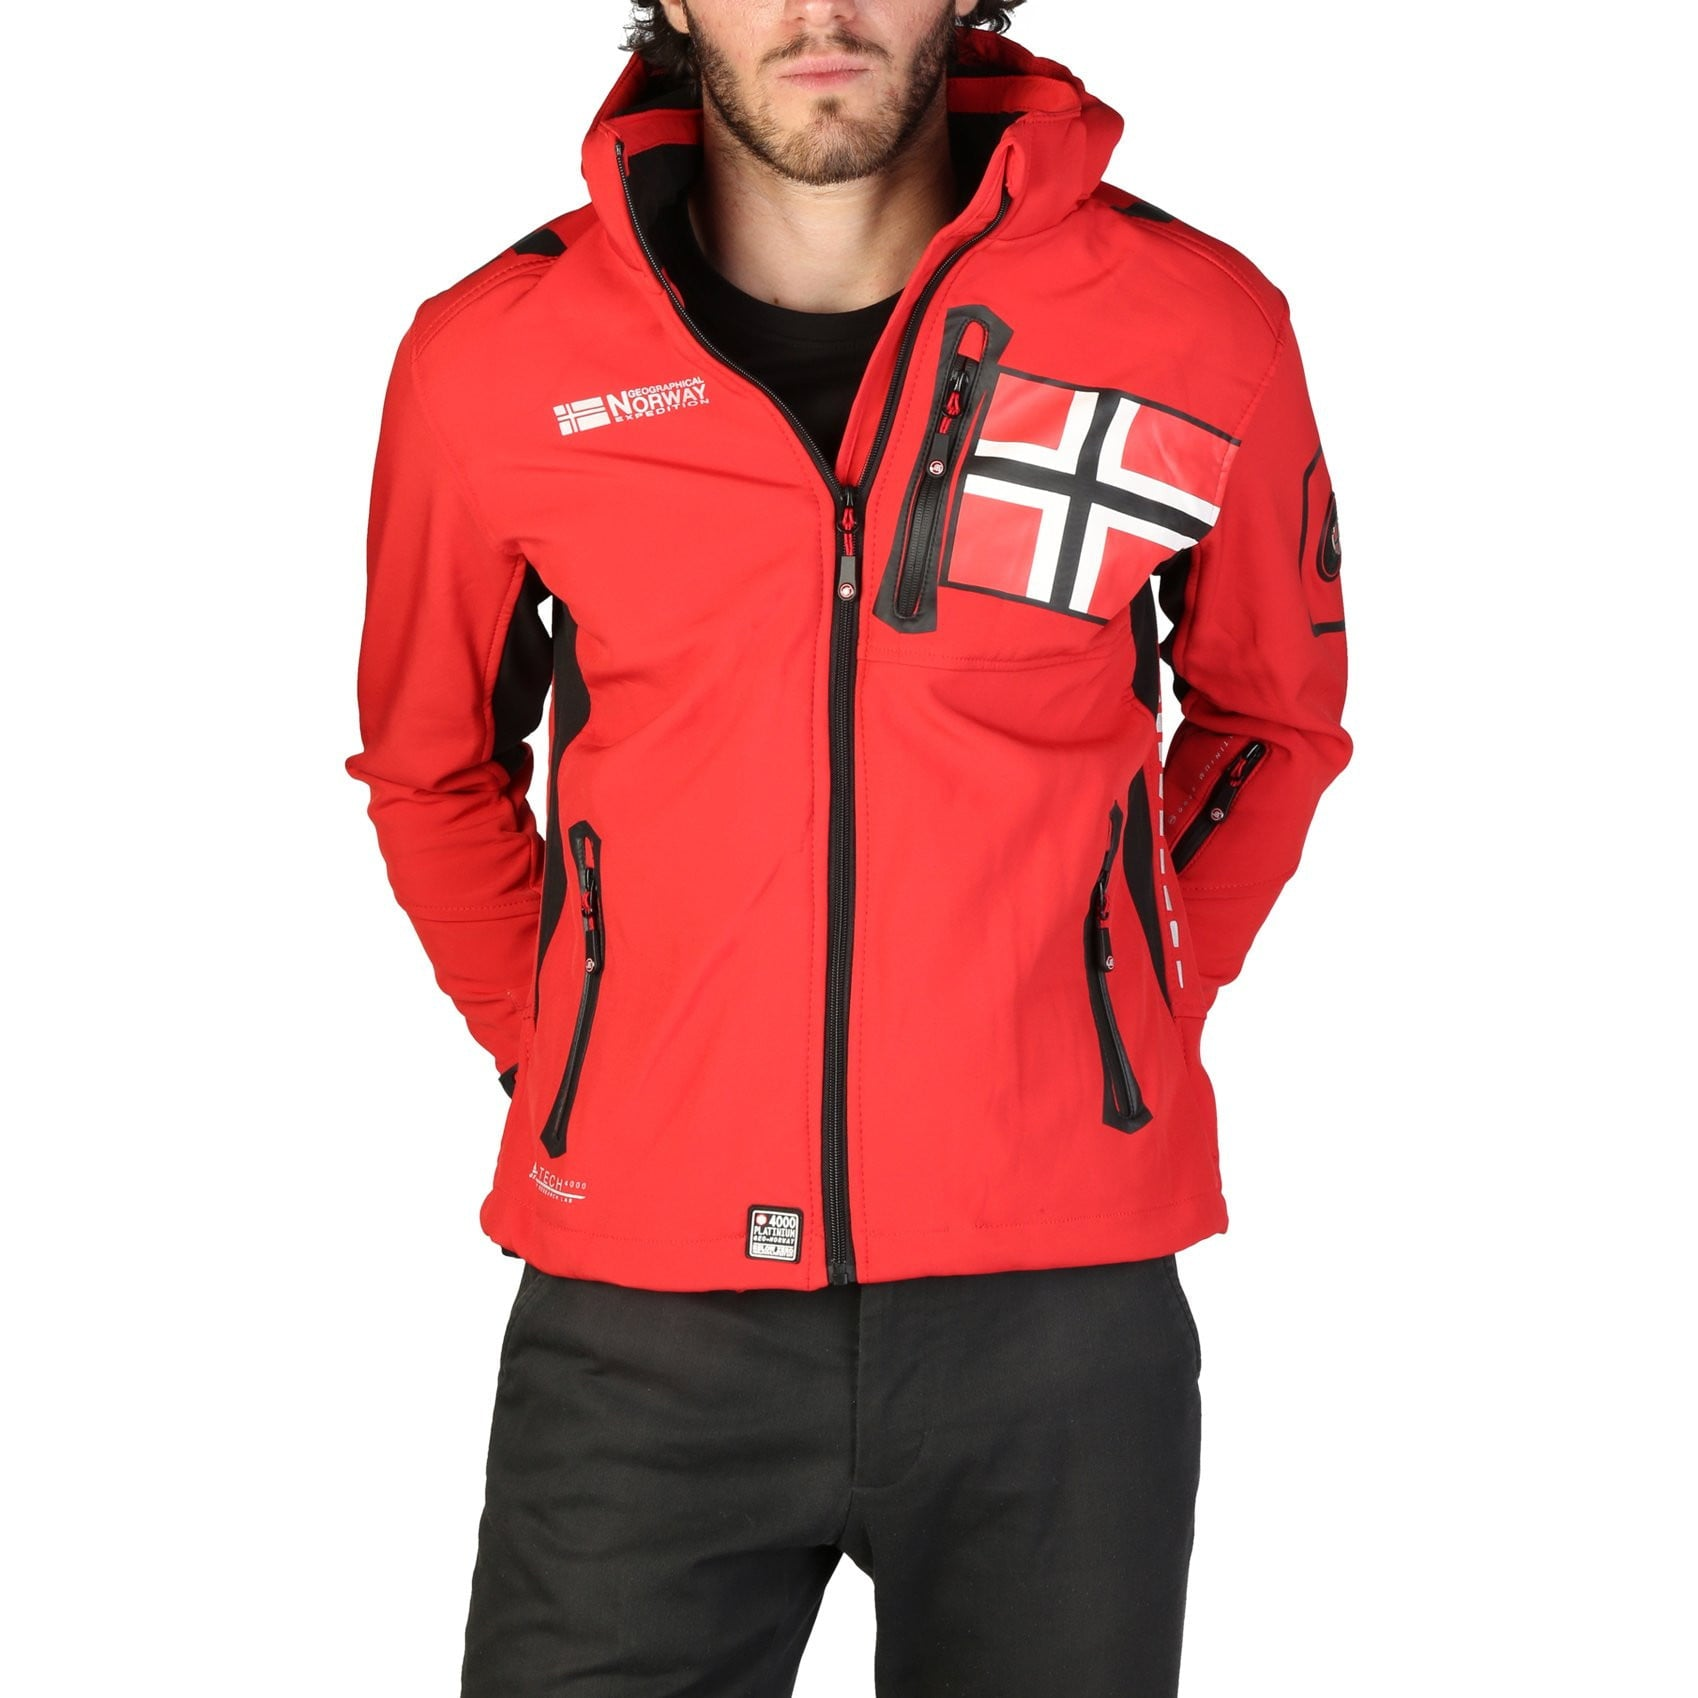 Geographical Norway - Renade_man